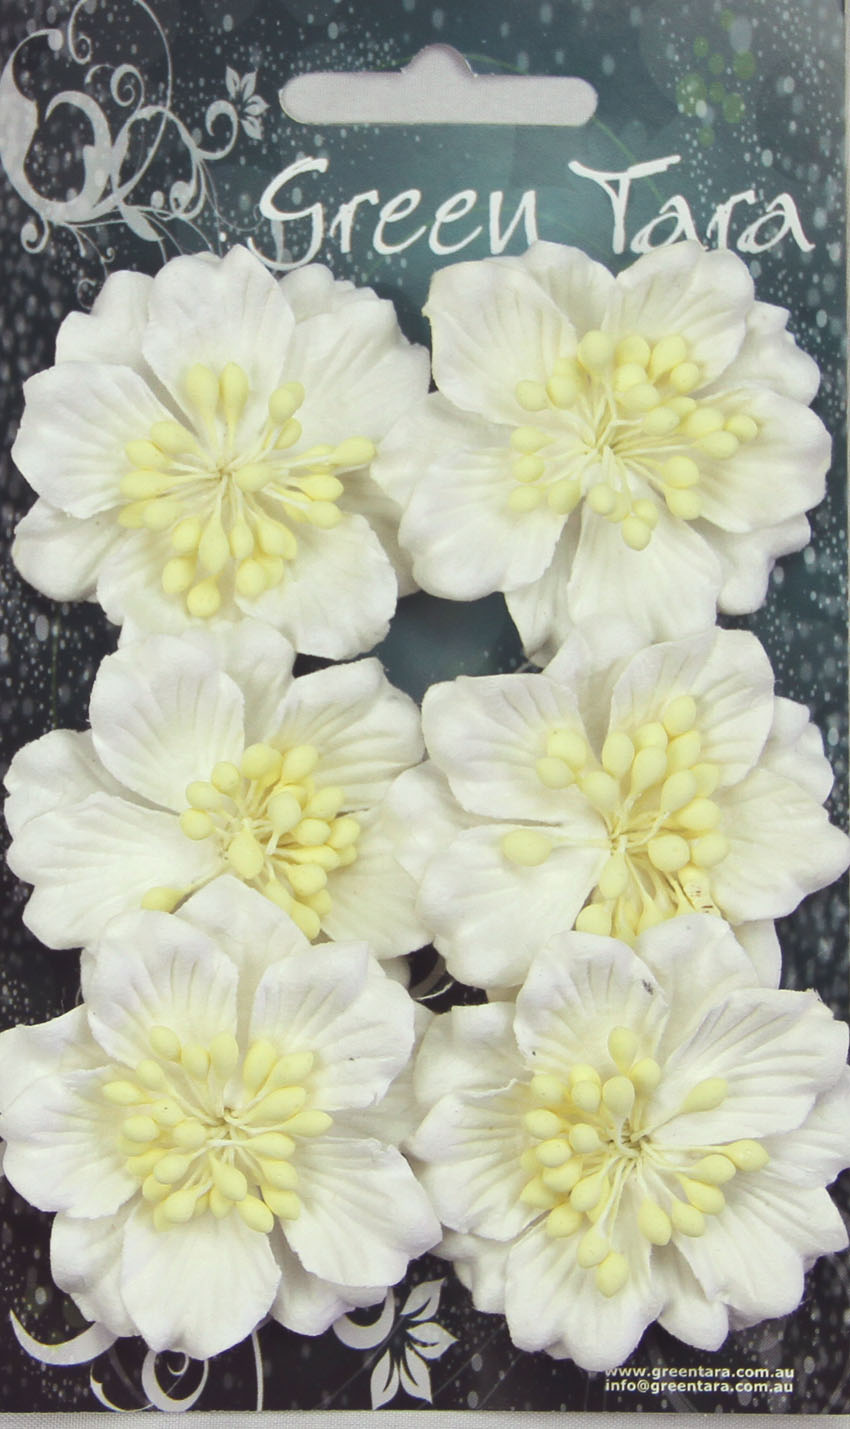 Pack 6 Azaleas, White 45mm